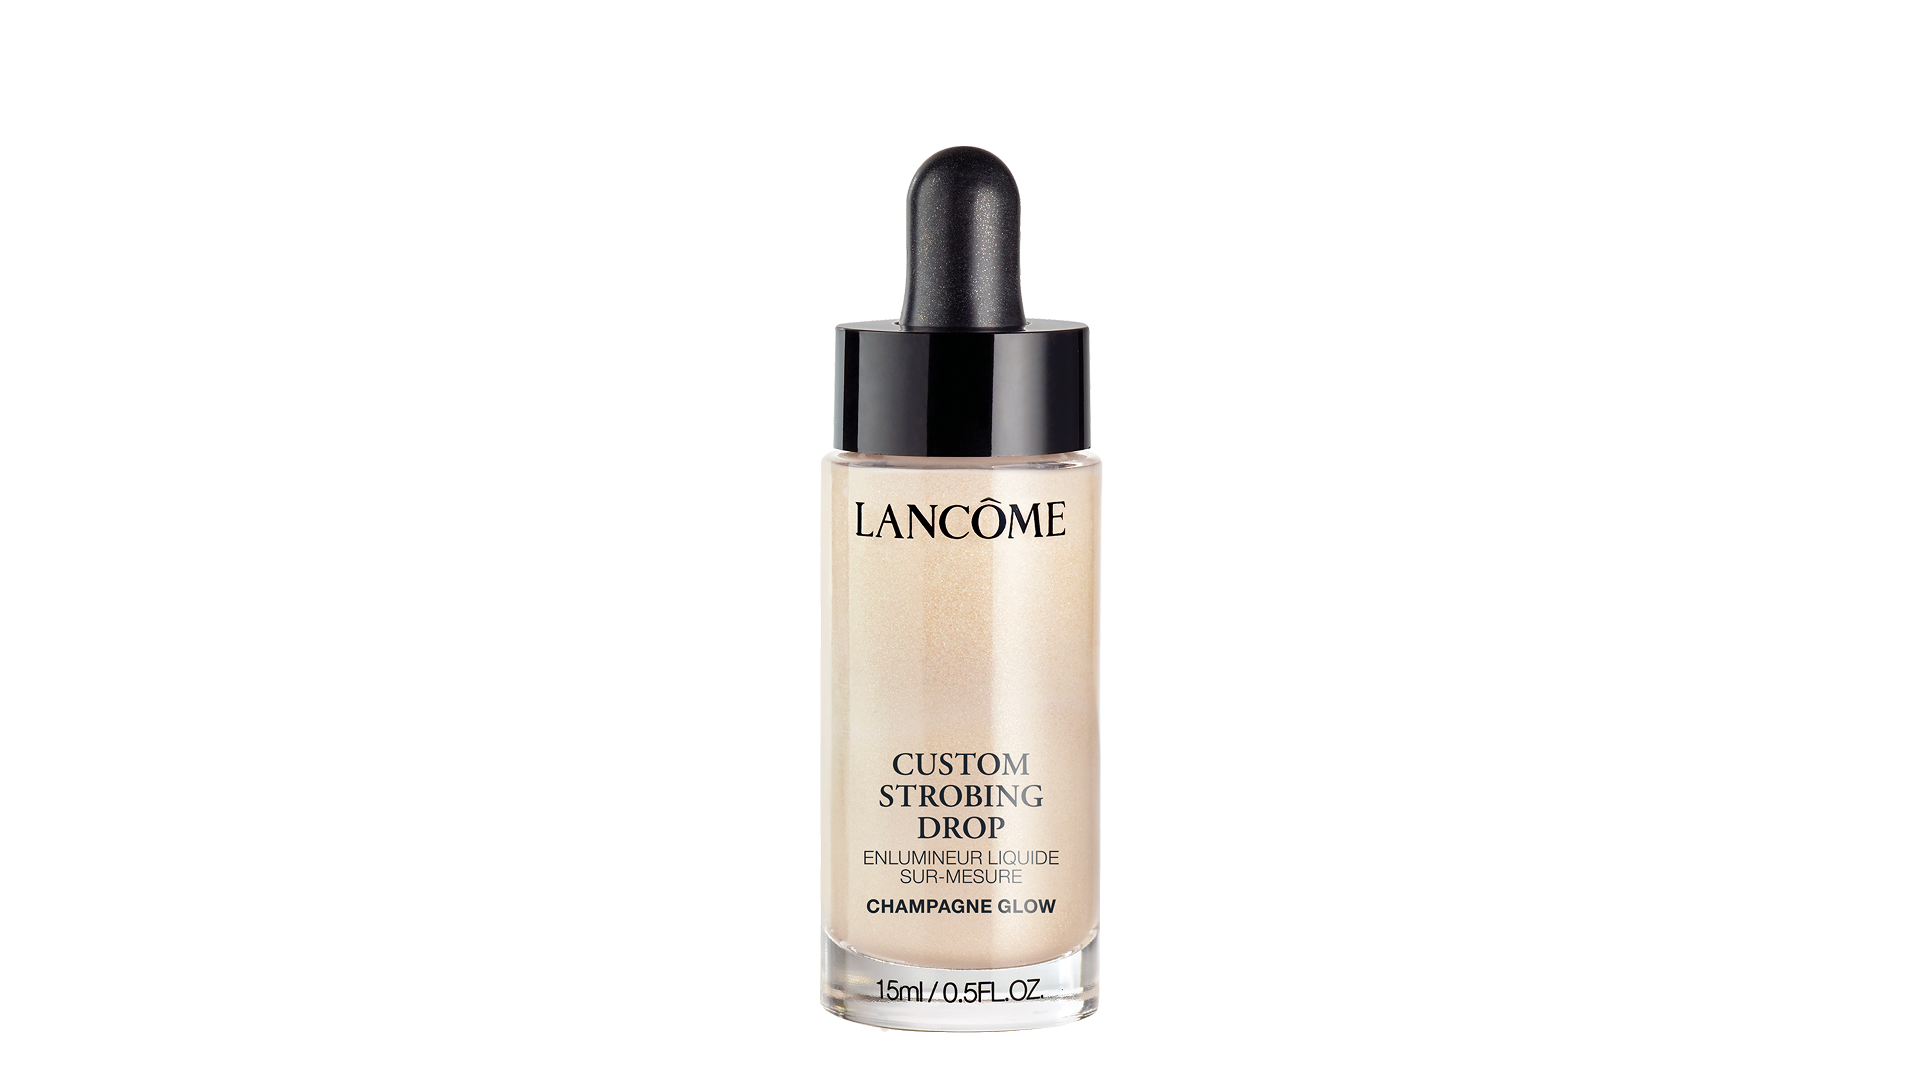 لانكوم-مكياج-lancome-custom strobing drop